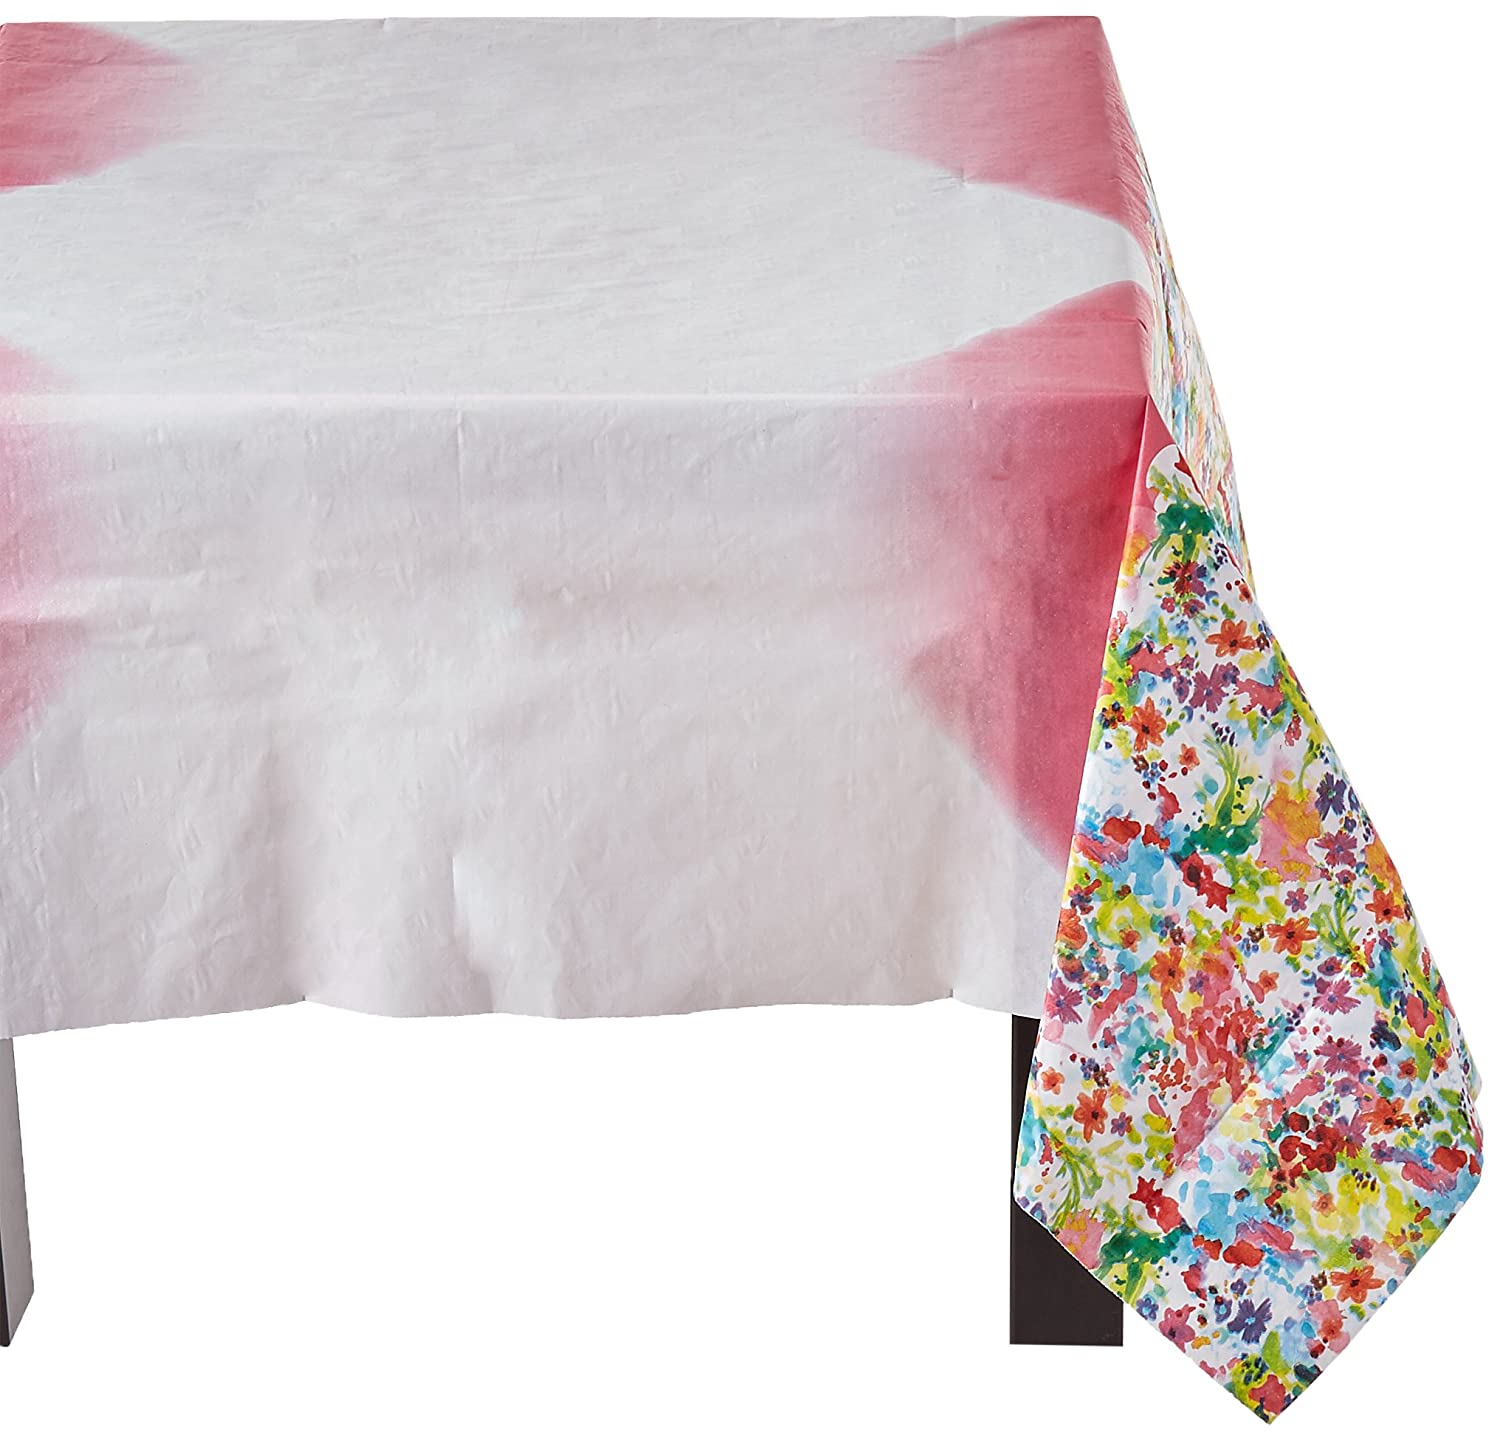 Perfect Amazon.com: Talking Tables Floral Fiesta Floral Table Cover For A Tea Party  Or Birthday, Multicolor: Kitchen U0026 Dining